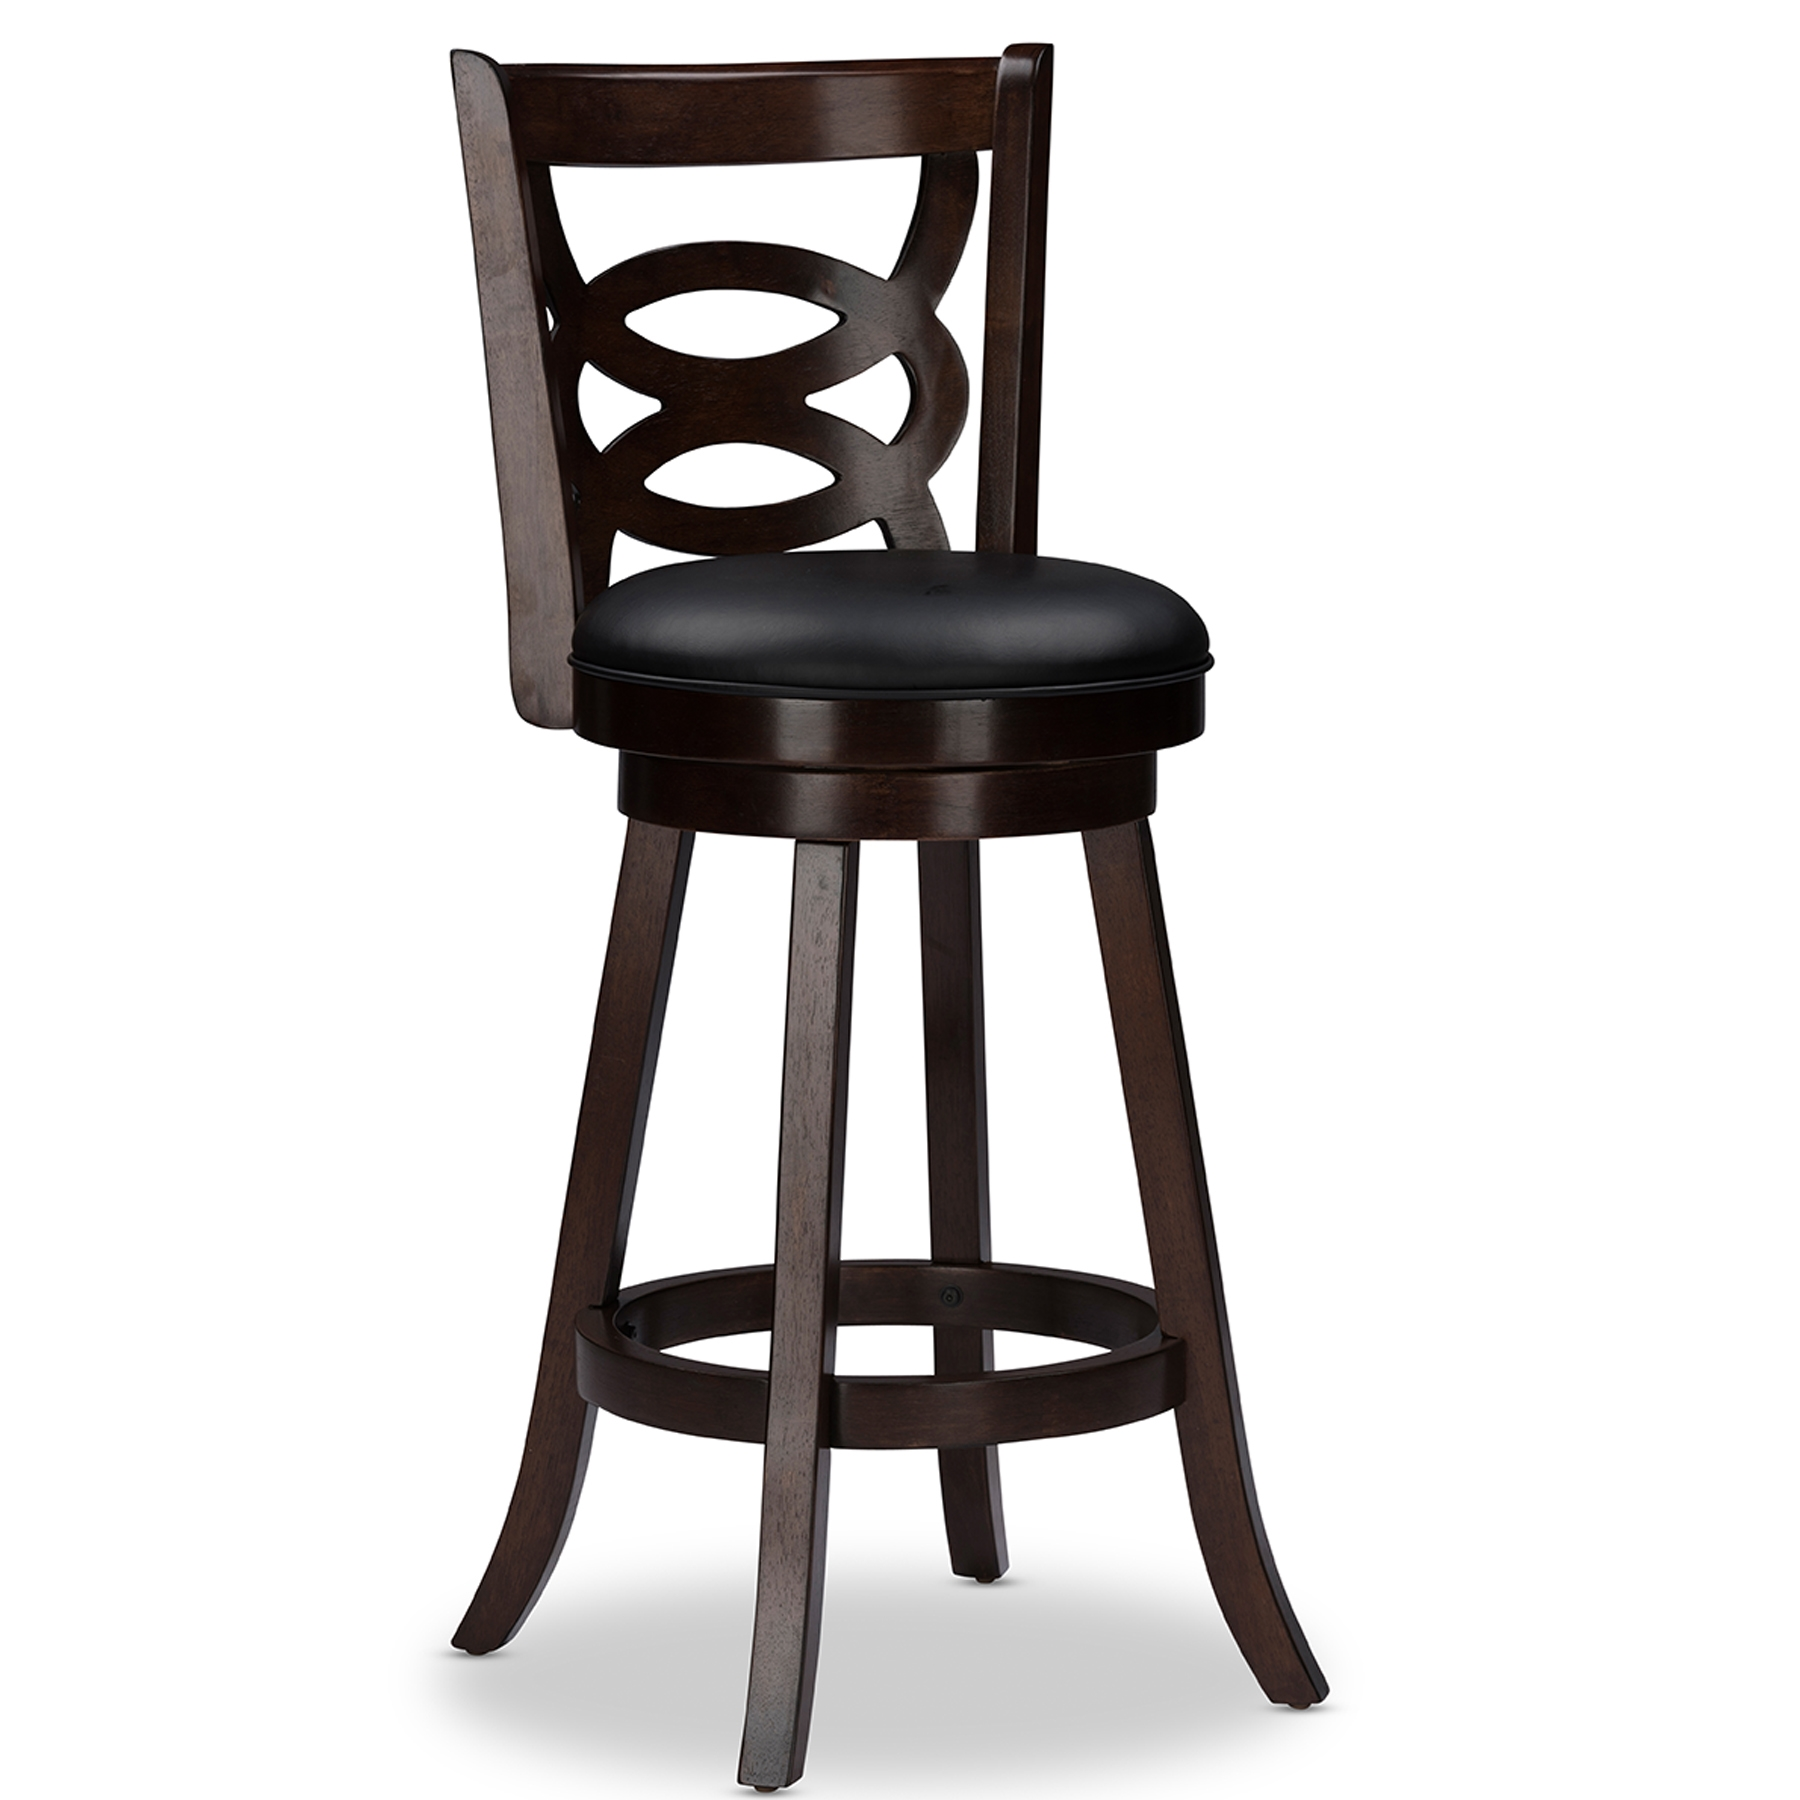 ... Baxton Studio Anthea Espresso Brown 29  Swivel Bar Stool with Upholstered Seat (Set of ...  sc 1 st  Baxton Studio Outlet & Baxton Studio Anthea Espresso Brown 29